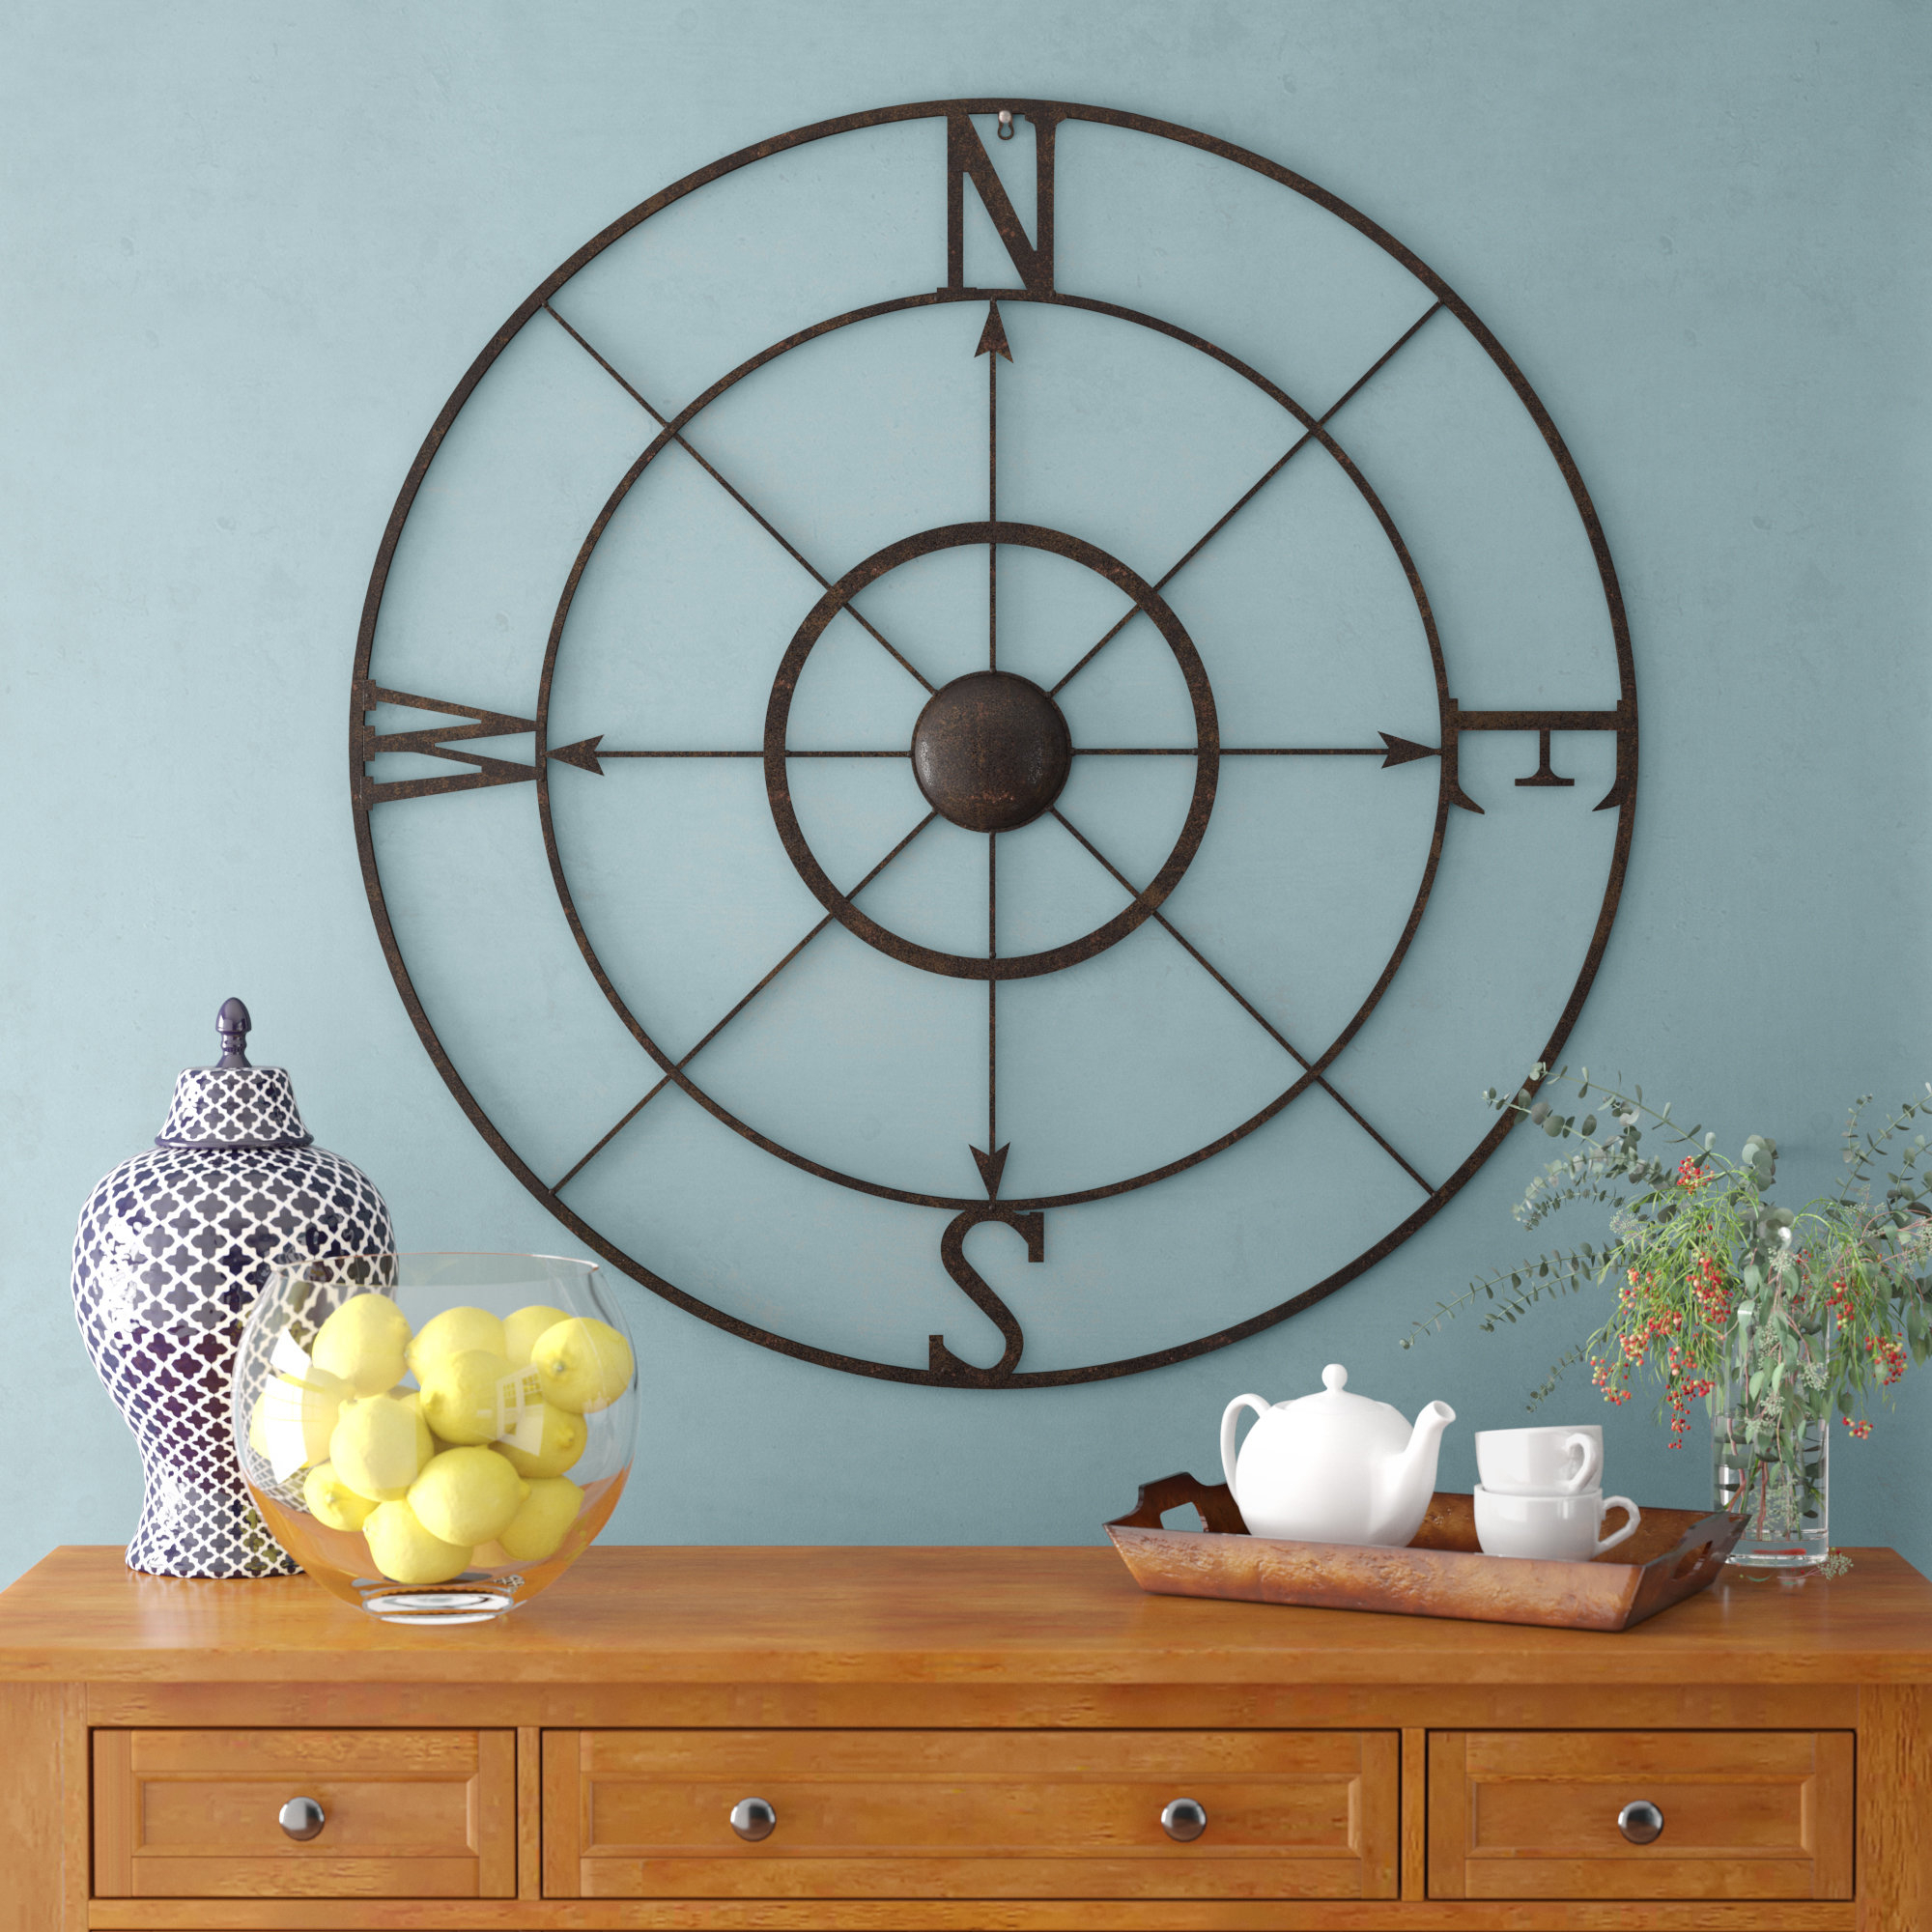 Nautical Compass Wall Decor | Wayfair with regard to Round Compass Wall Decor (Image 21 of 30)